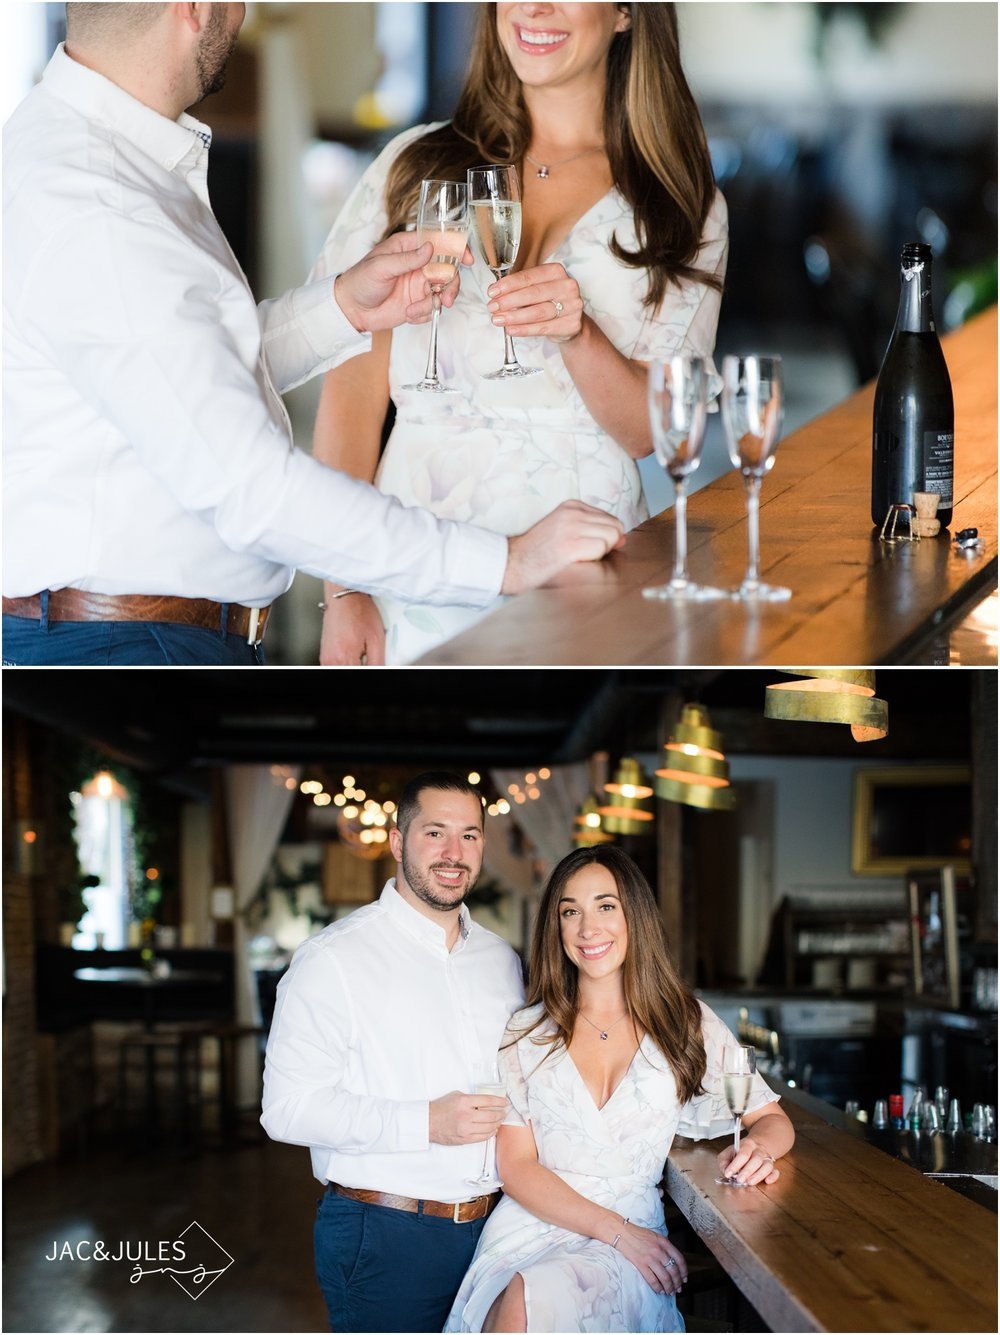 Engagement photos at Grand Vin in Hoboken, NJ.